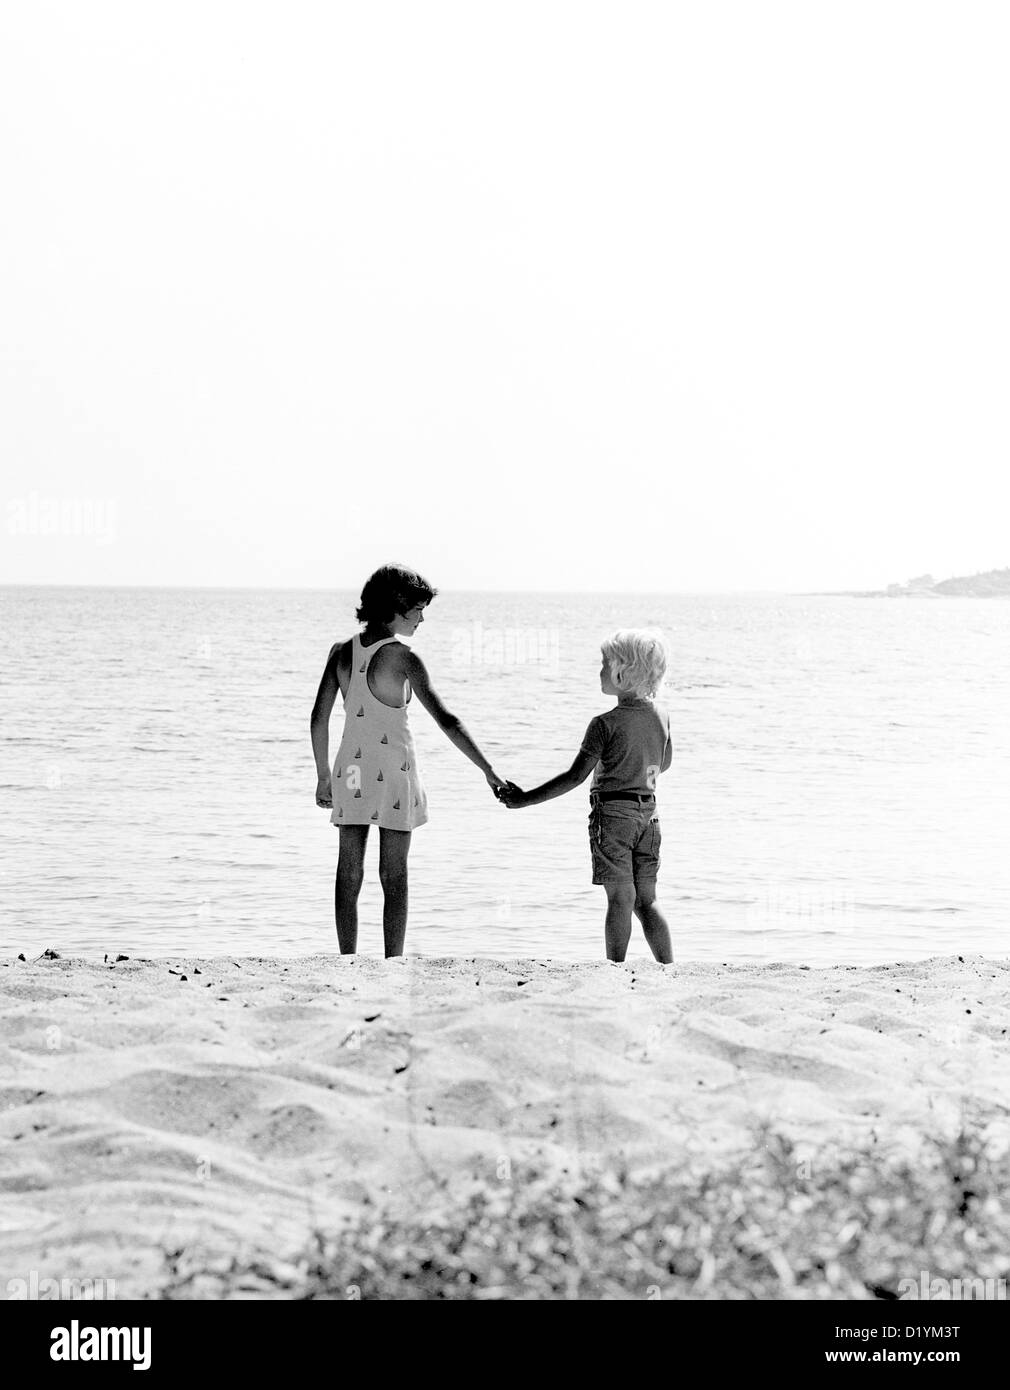 two children at the seashore looking at each other - Stock Image